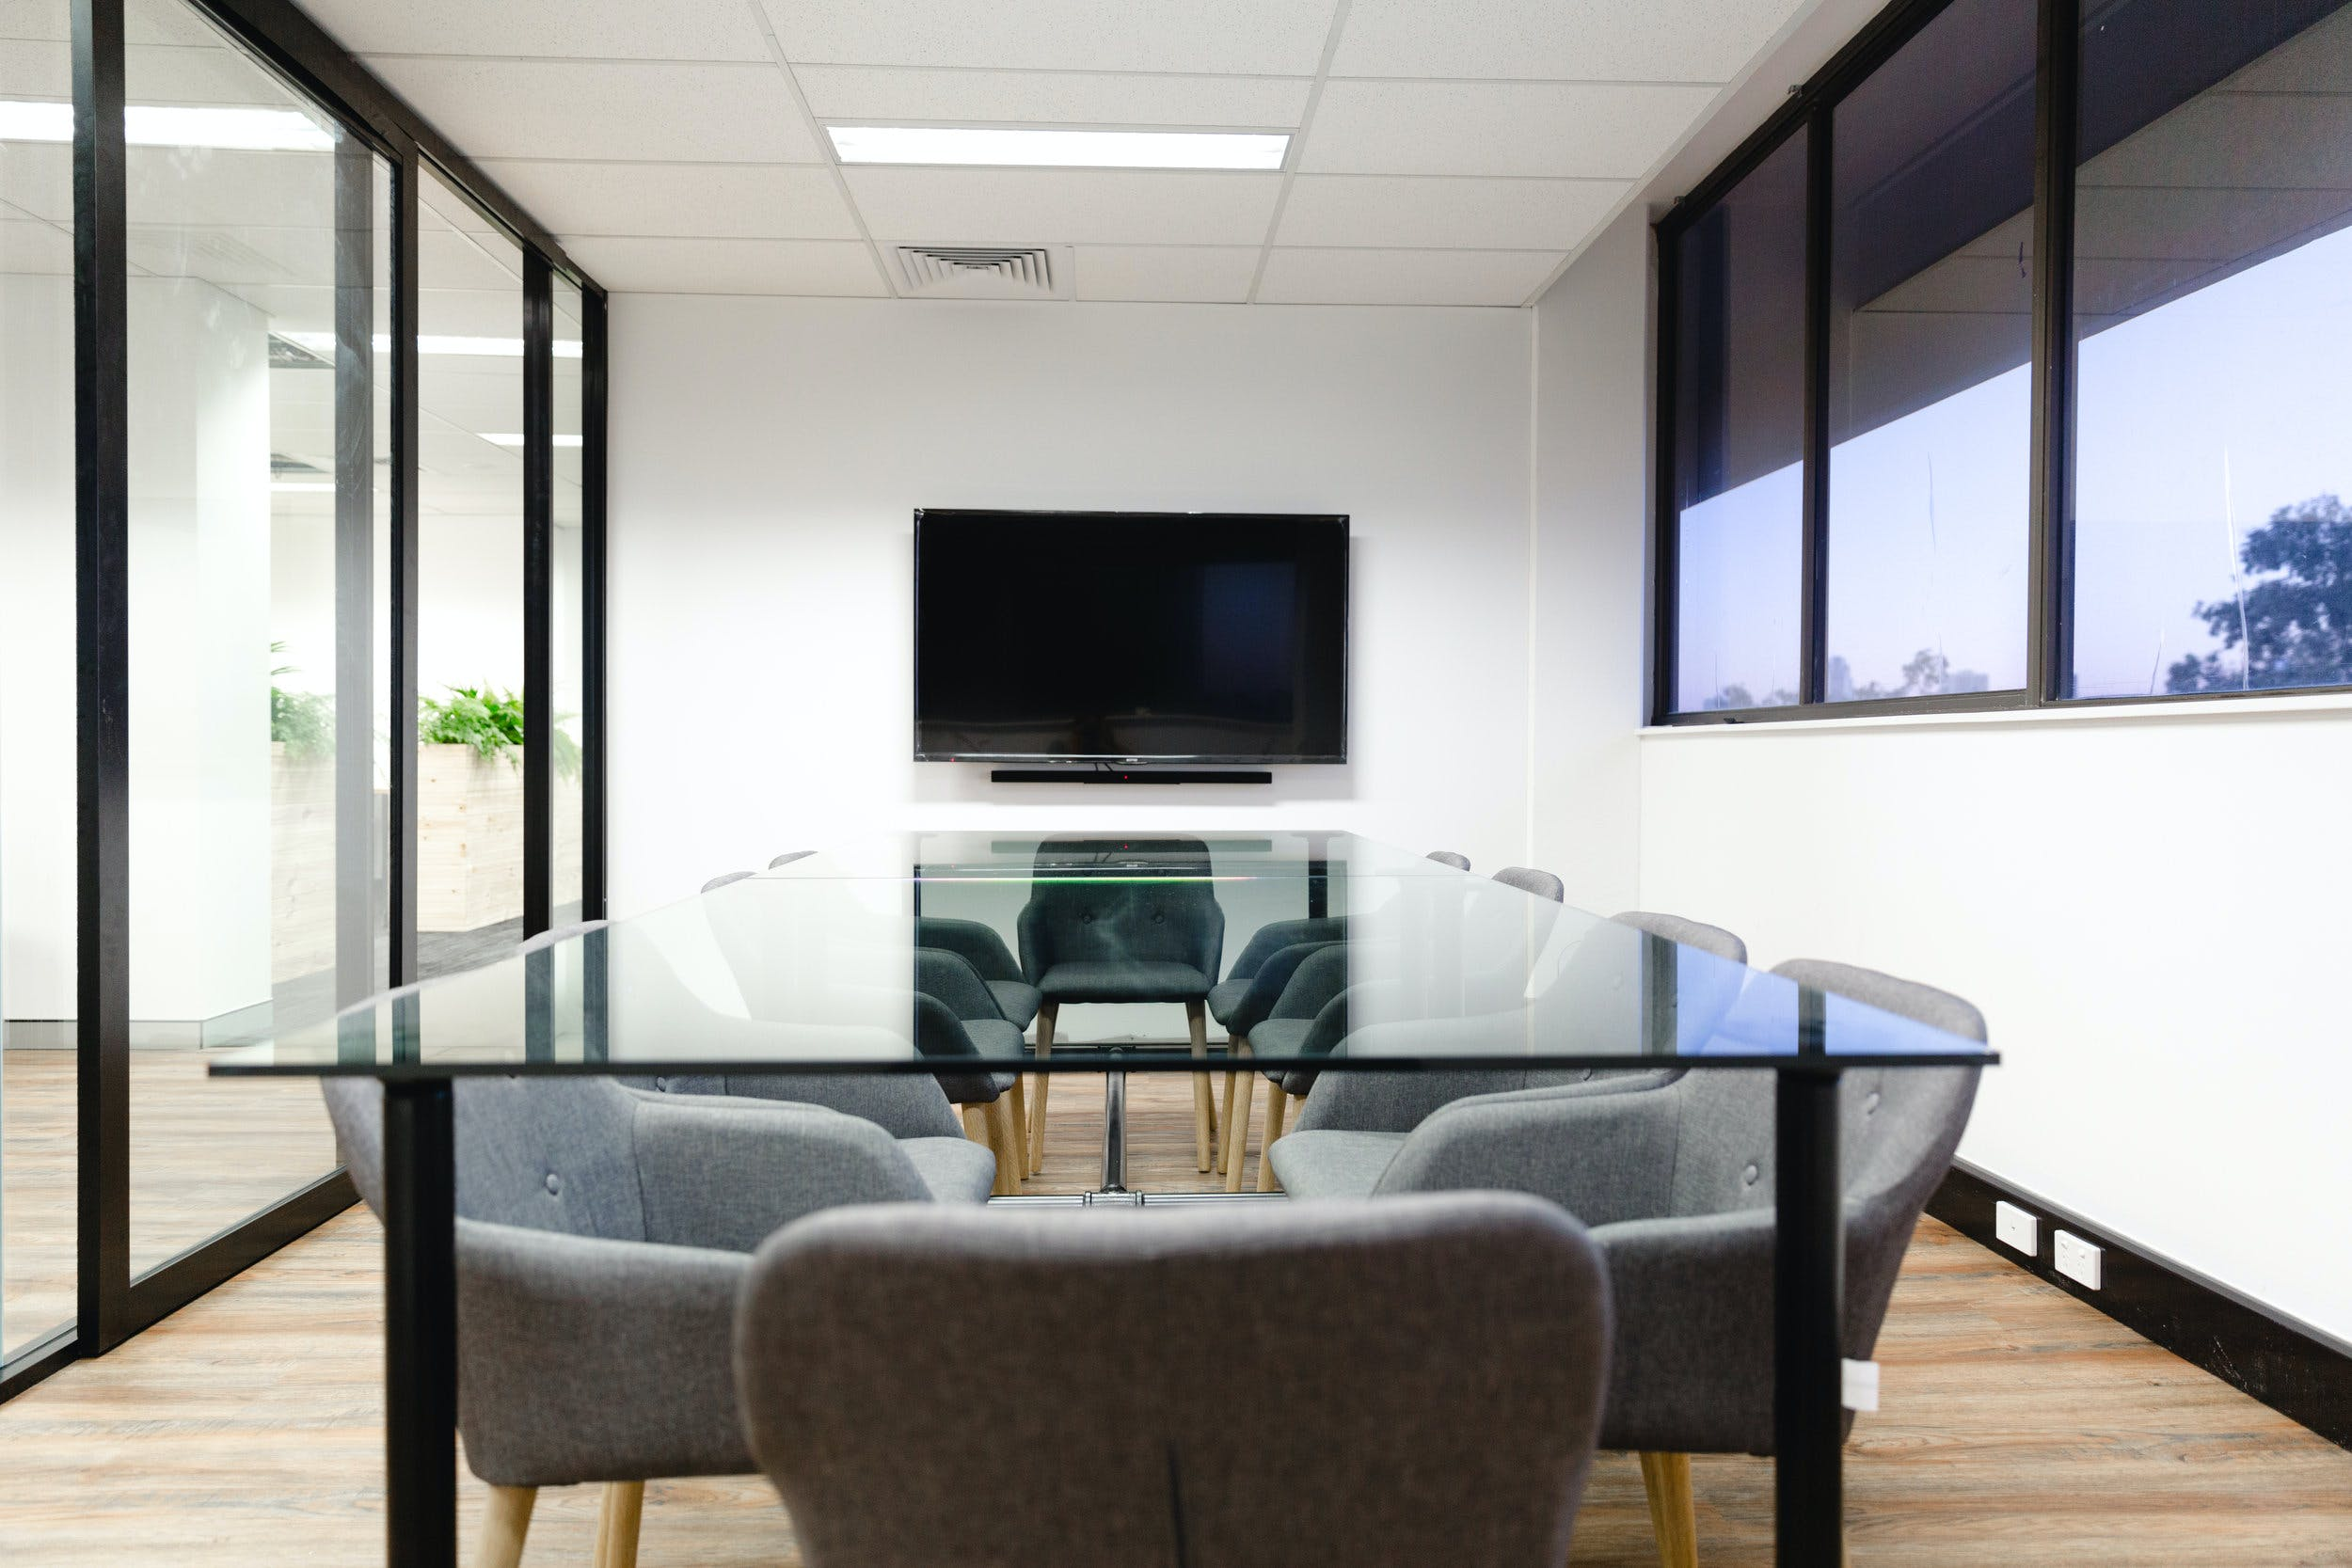 Boardroom, meeting room at The House Workspace, image 1